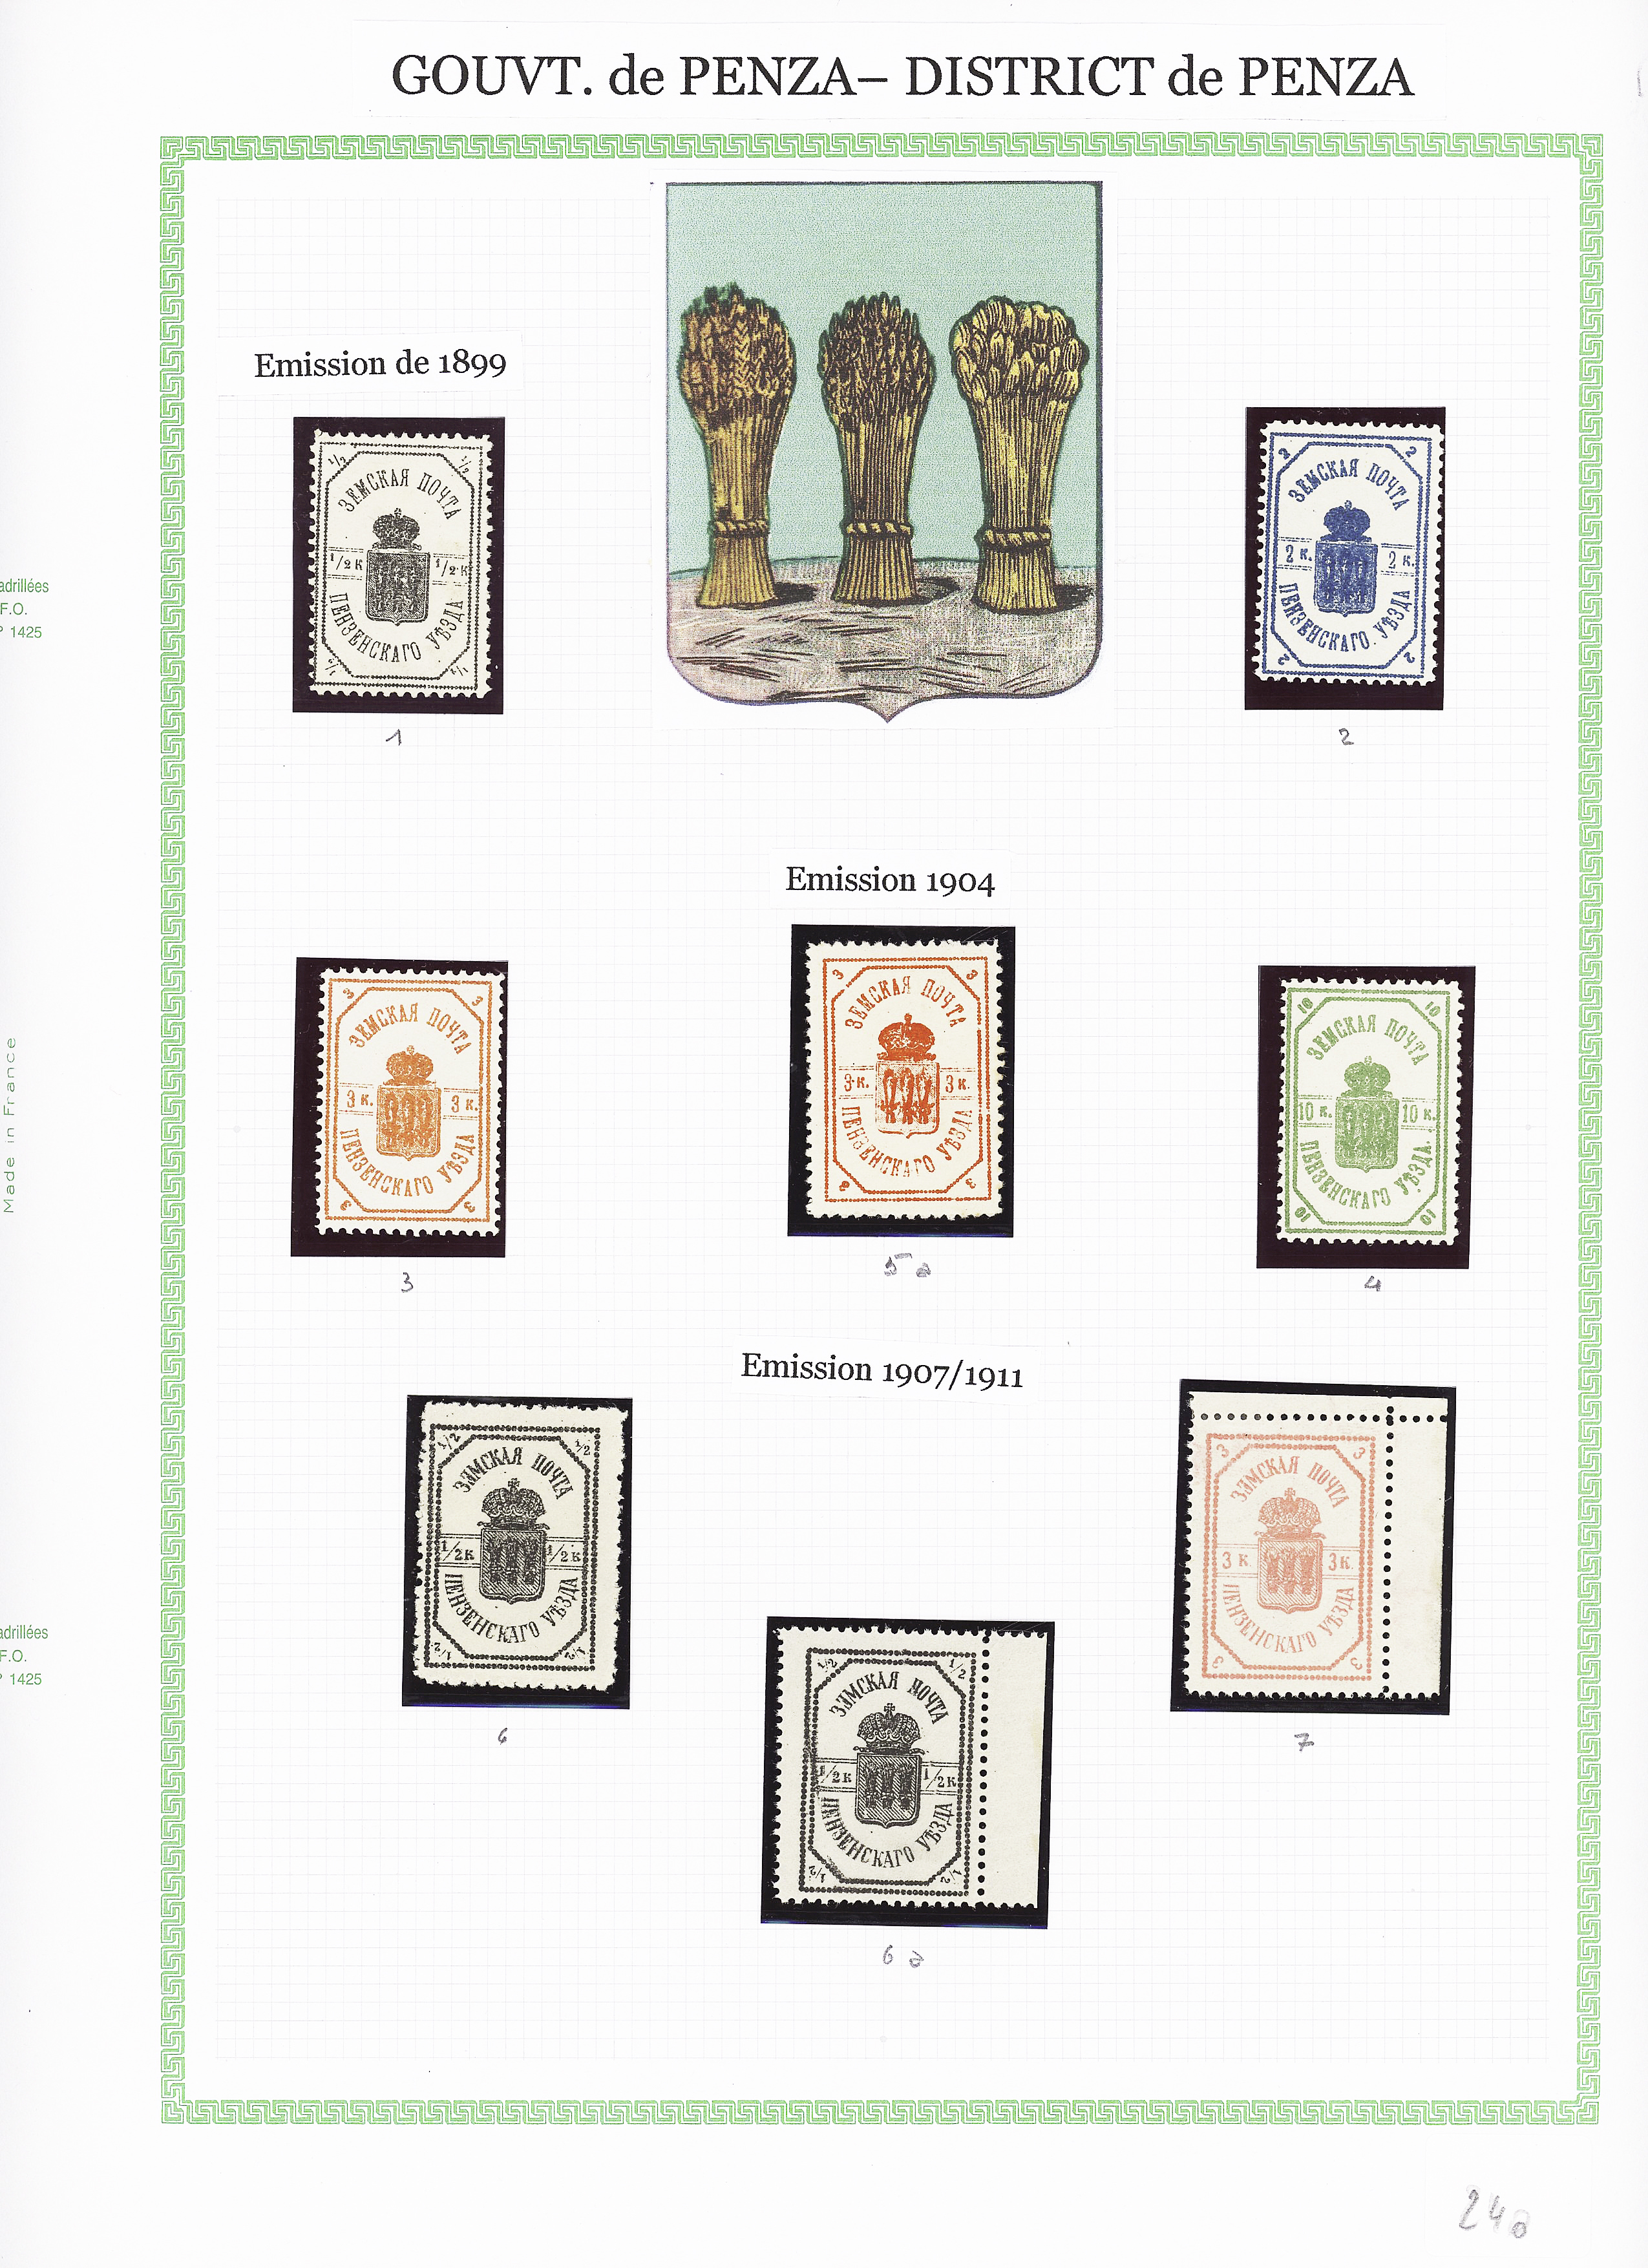 Lot 521 - Eastern Europe » RUSSIA - ZEMSTVOS » Penza (Penza Government)  -  Le Timbre Classique SA SALE ON OFFERS N ° 37 PARIS